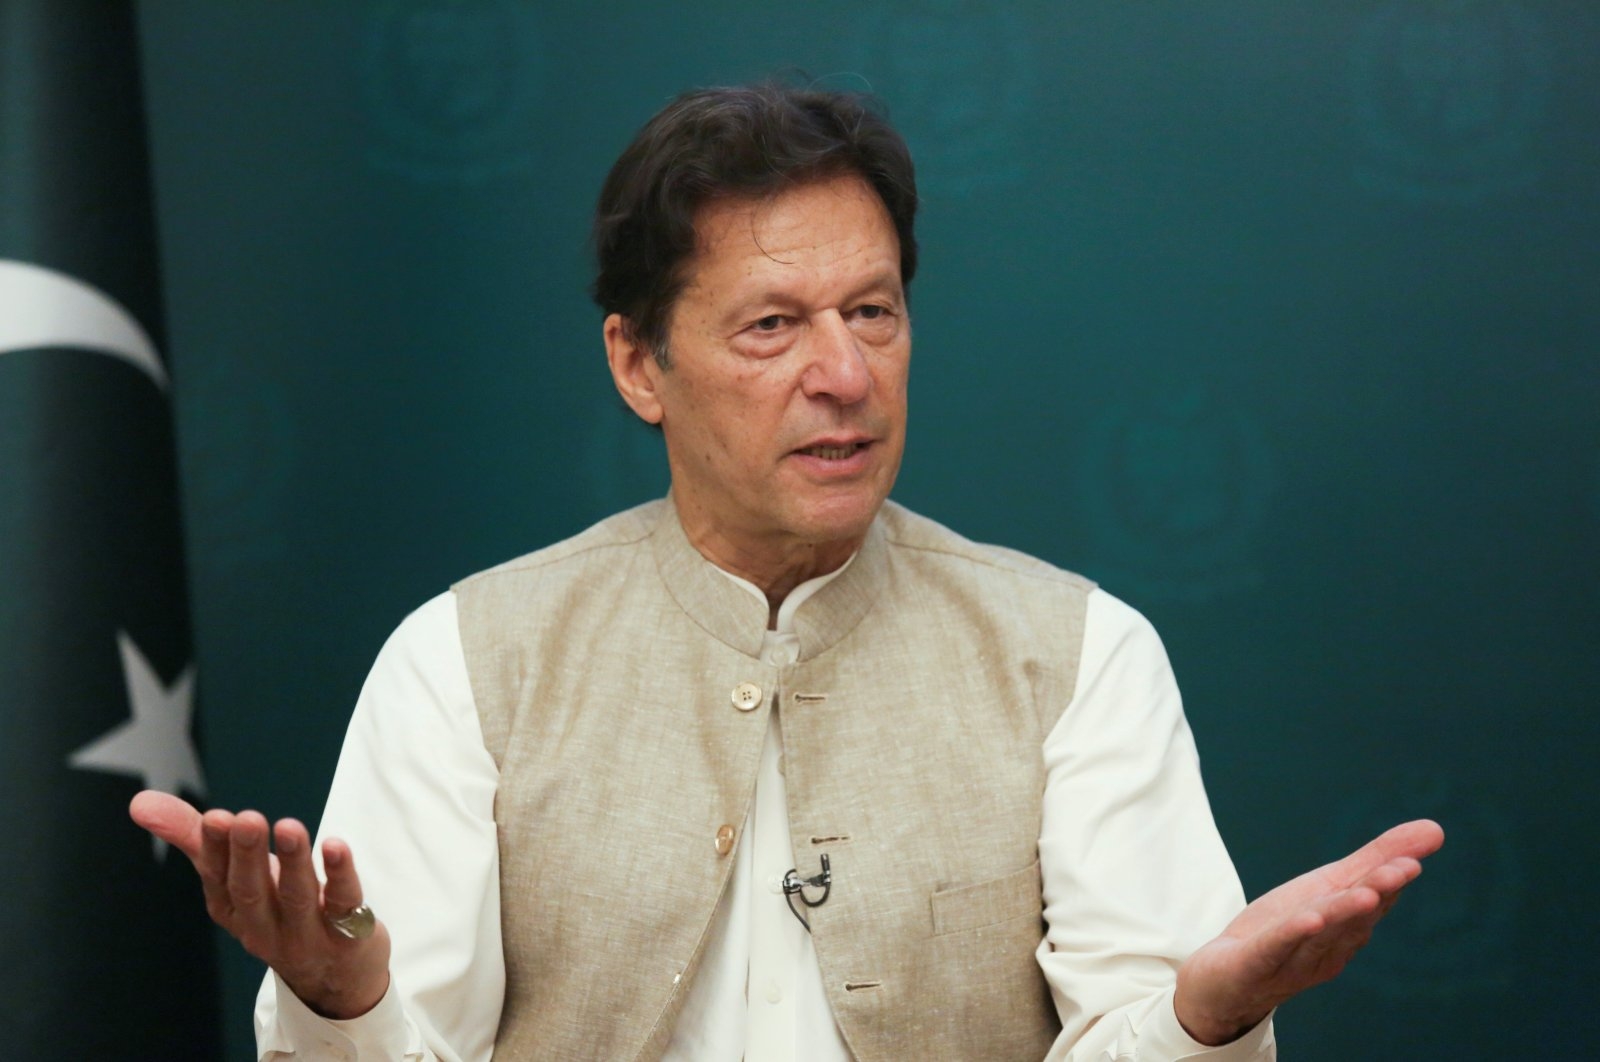 Pakistan's Prime Minister Imran Khan gestures during an interview with Reuters in Islamabad, Pakistan, June 4, 2021. (Reuters Photo)